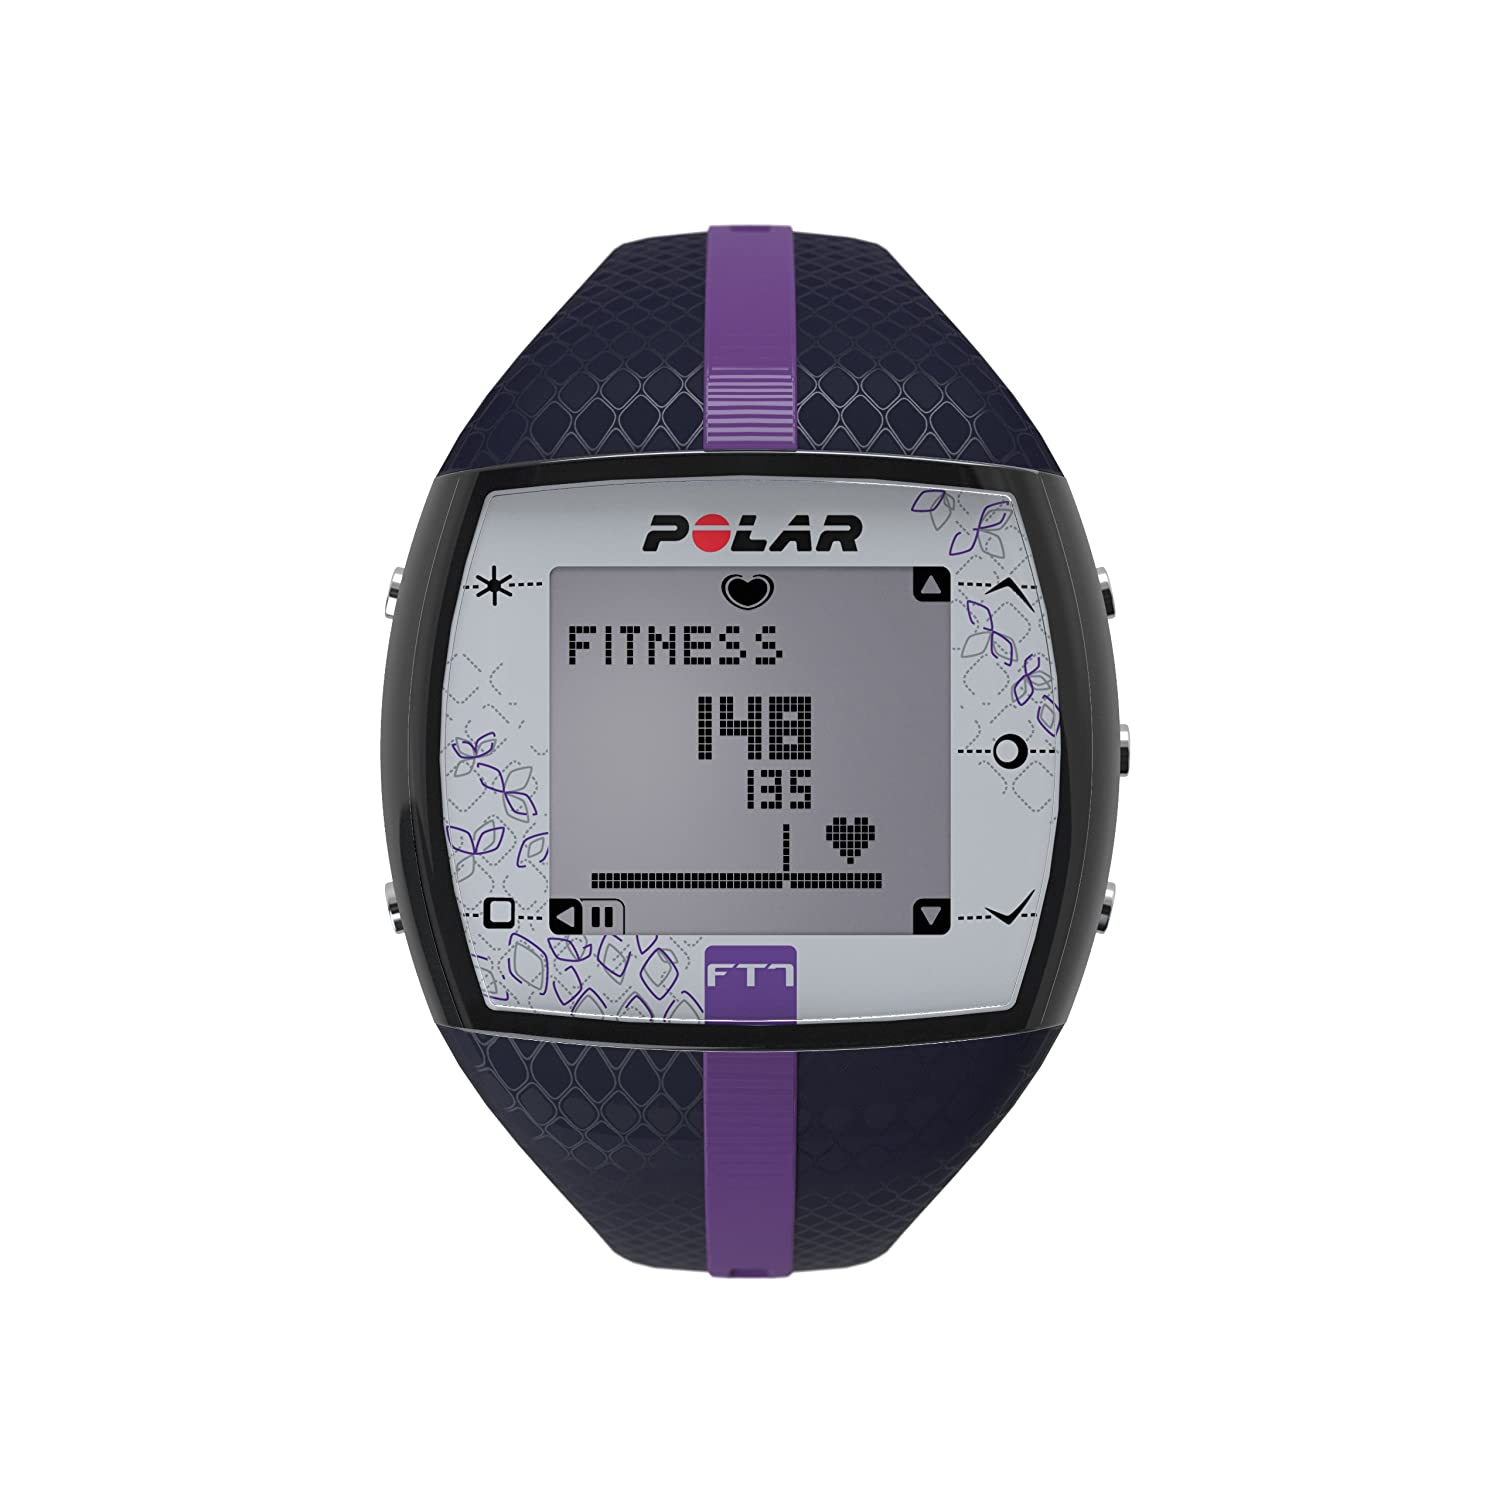 Amazon.com: Polar Womens FT7 Heart Rate Monitor and Sports Watch: Health & Personal Care